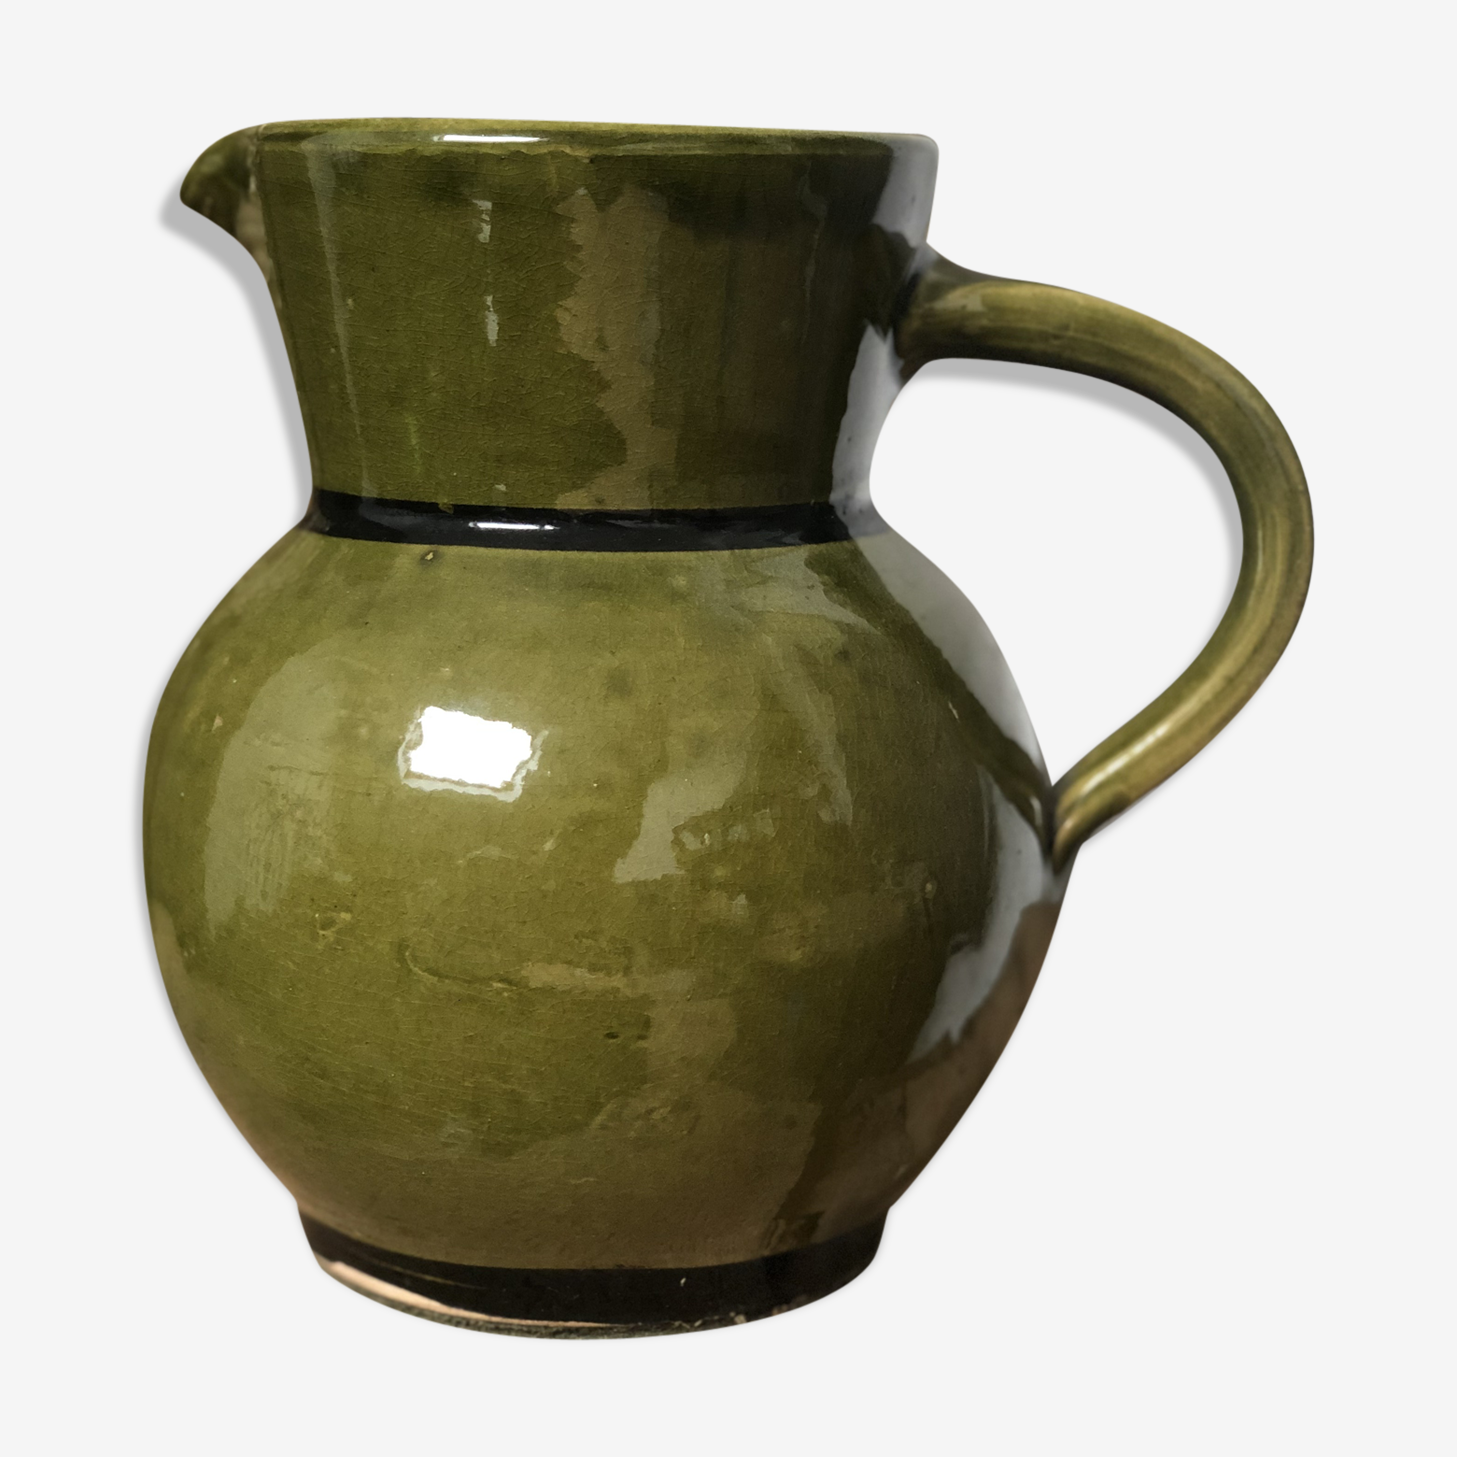 Gregory Green stoneware pitcher